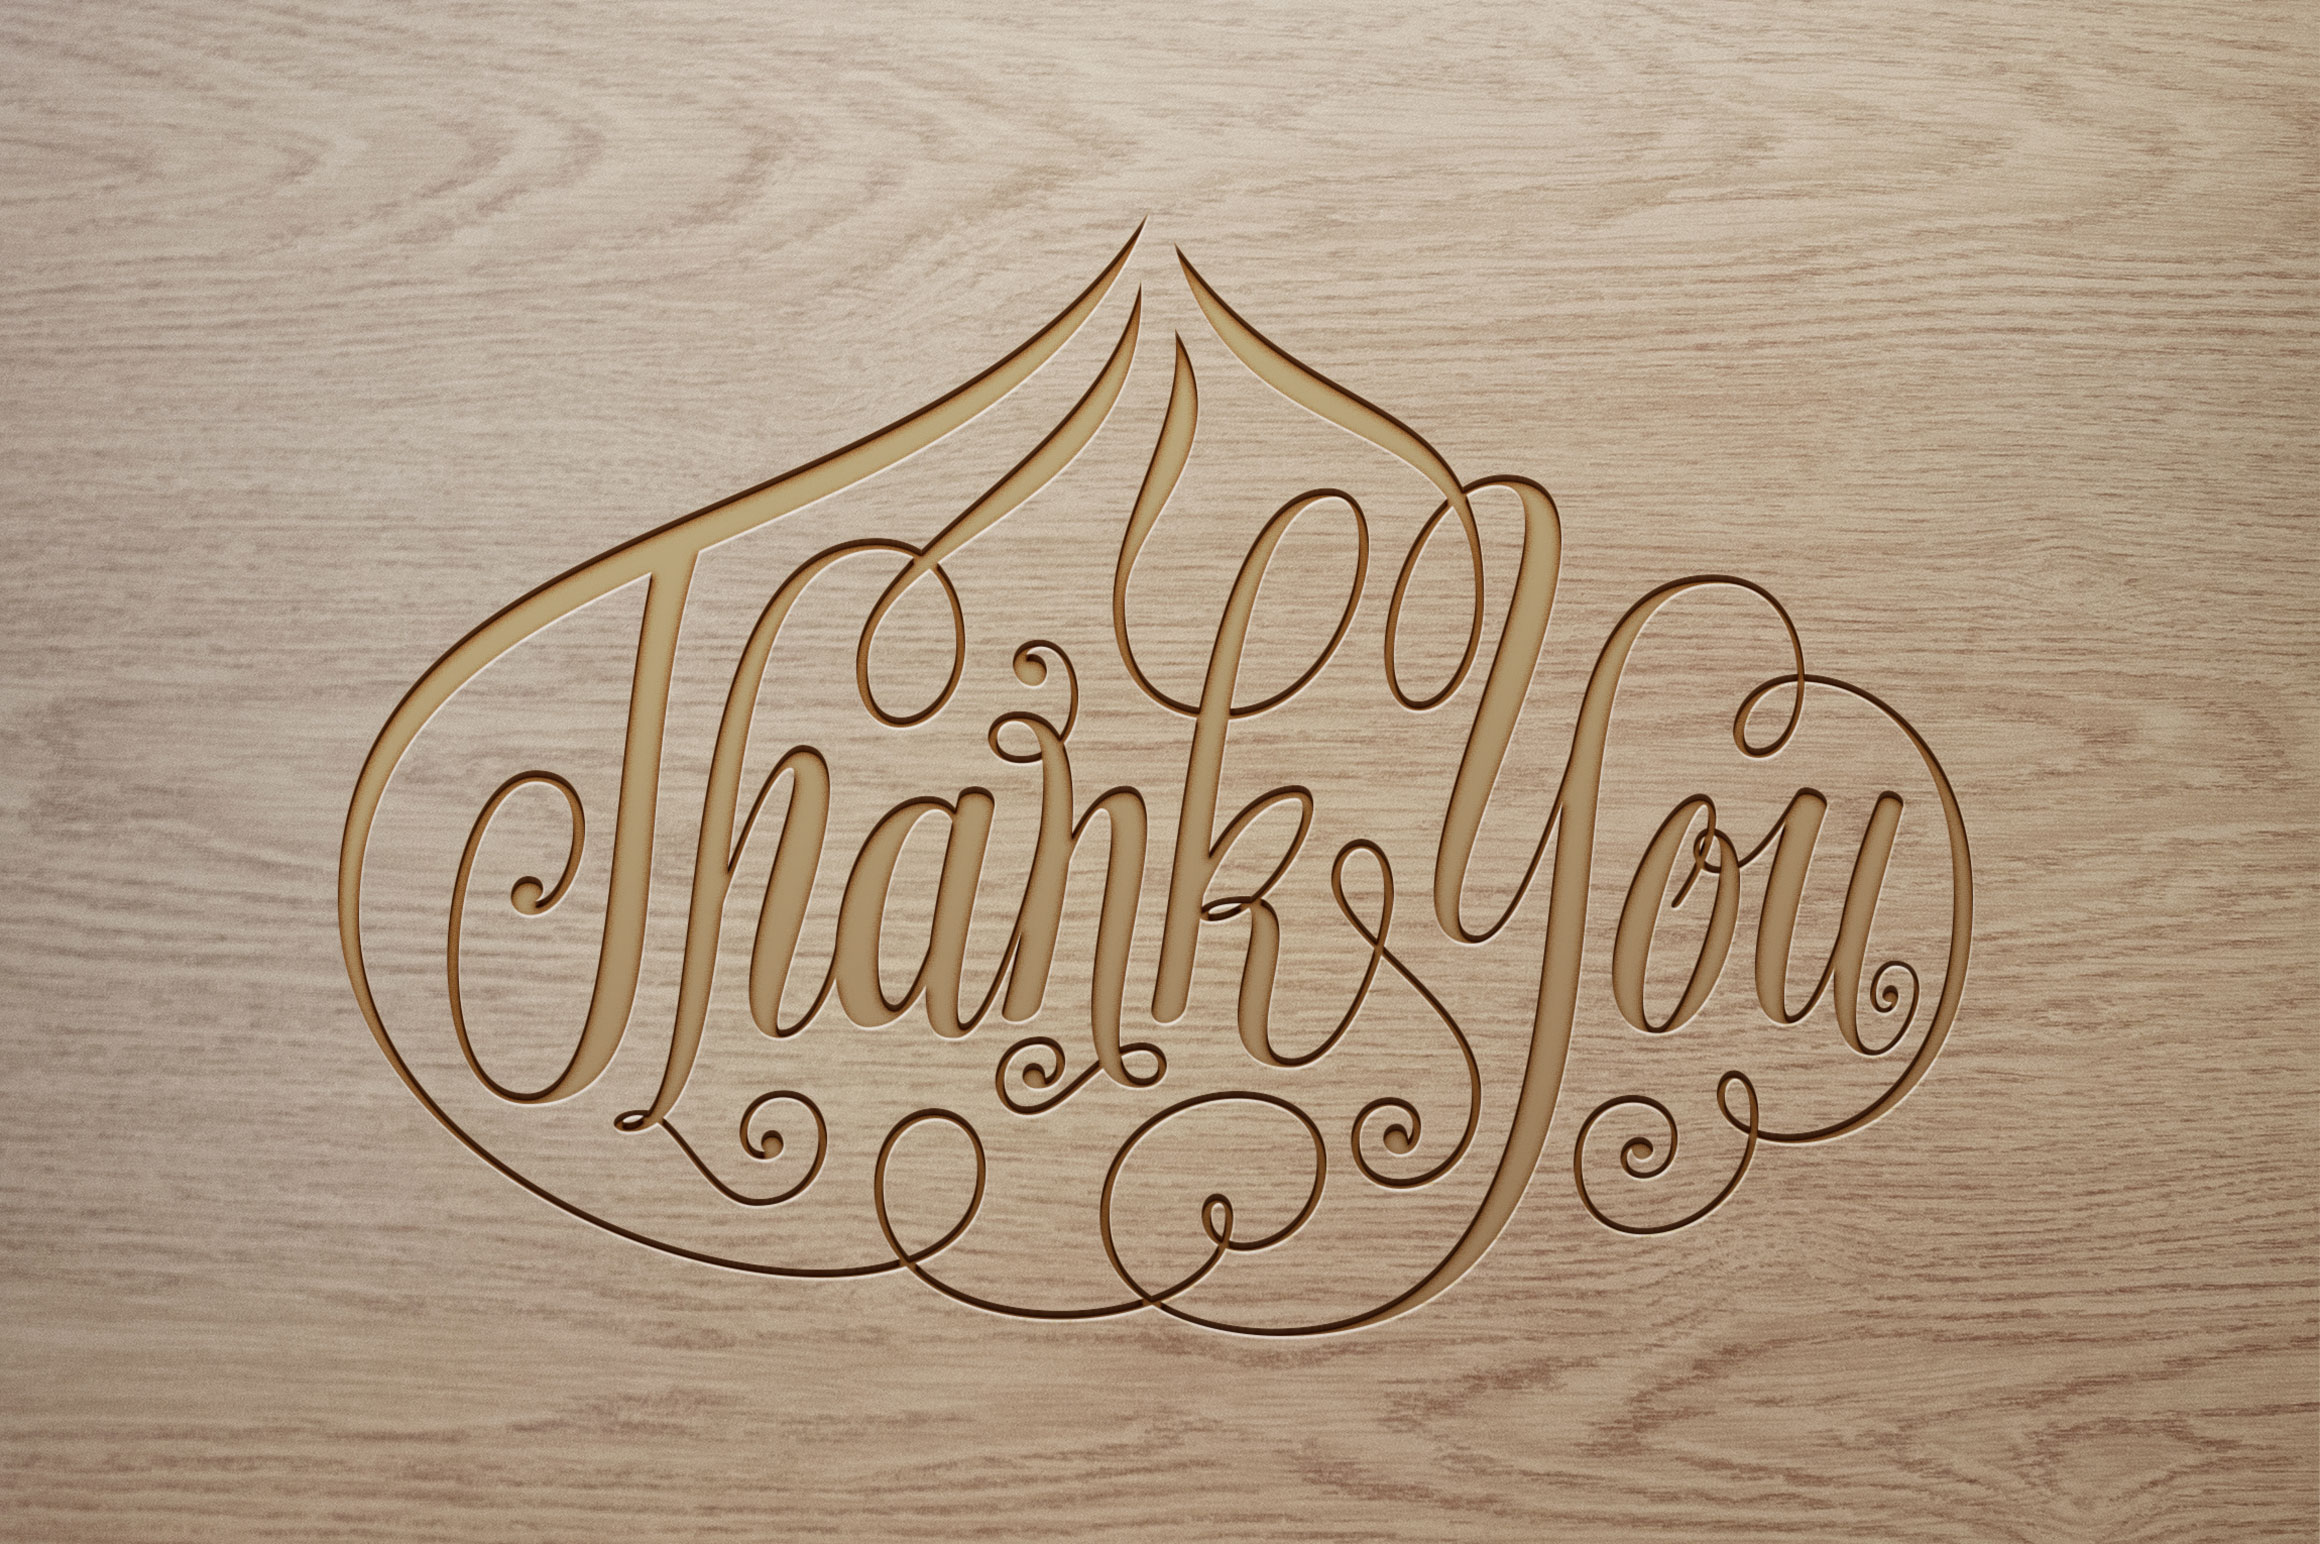 Thank-You-Onion-Shape-Lettering SVG example image 5